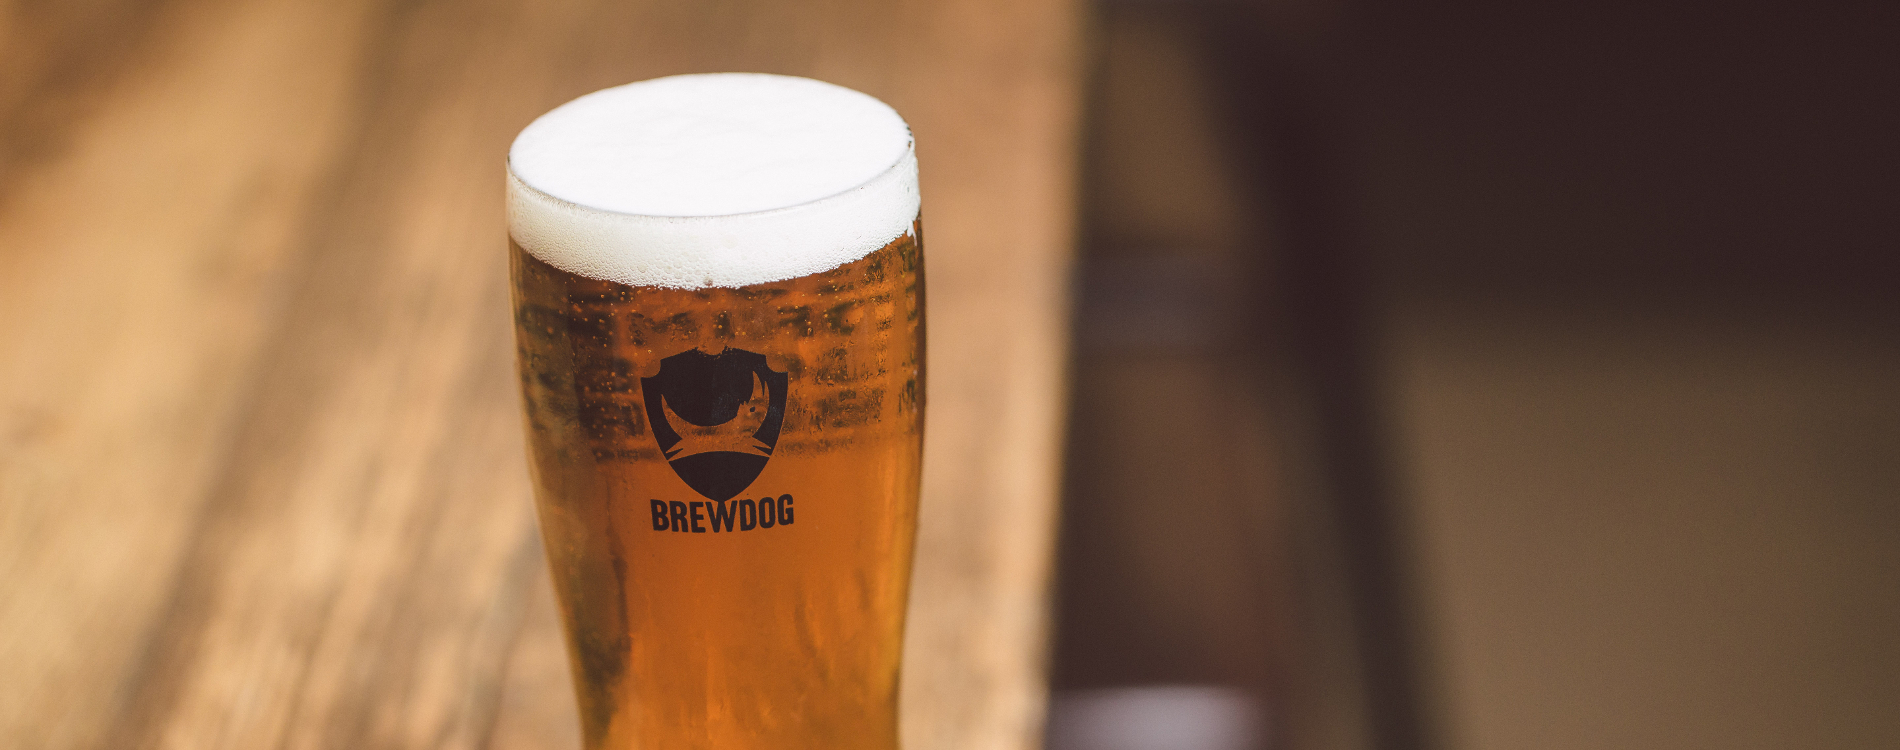 BREWDOG BARS UPDATE